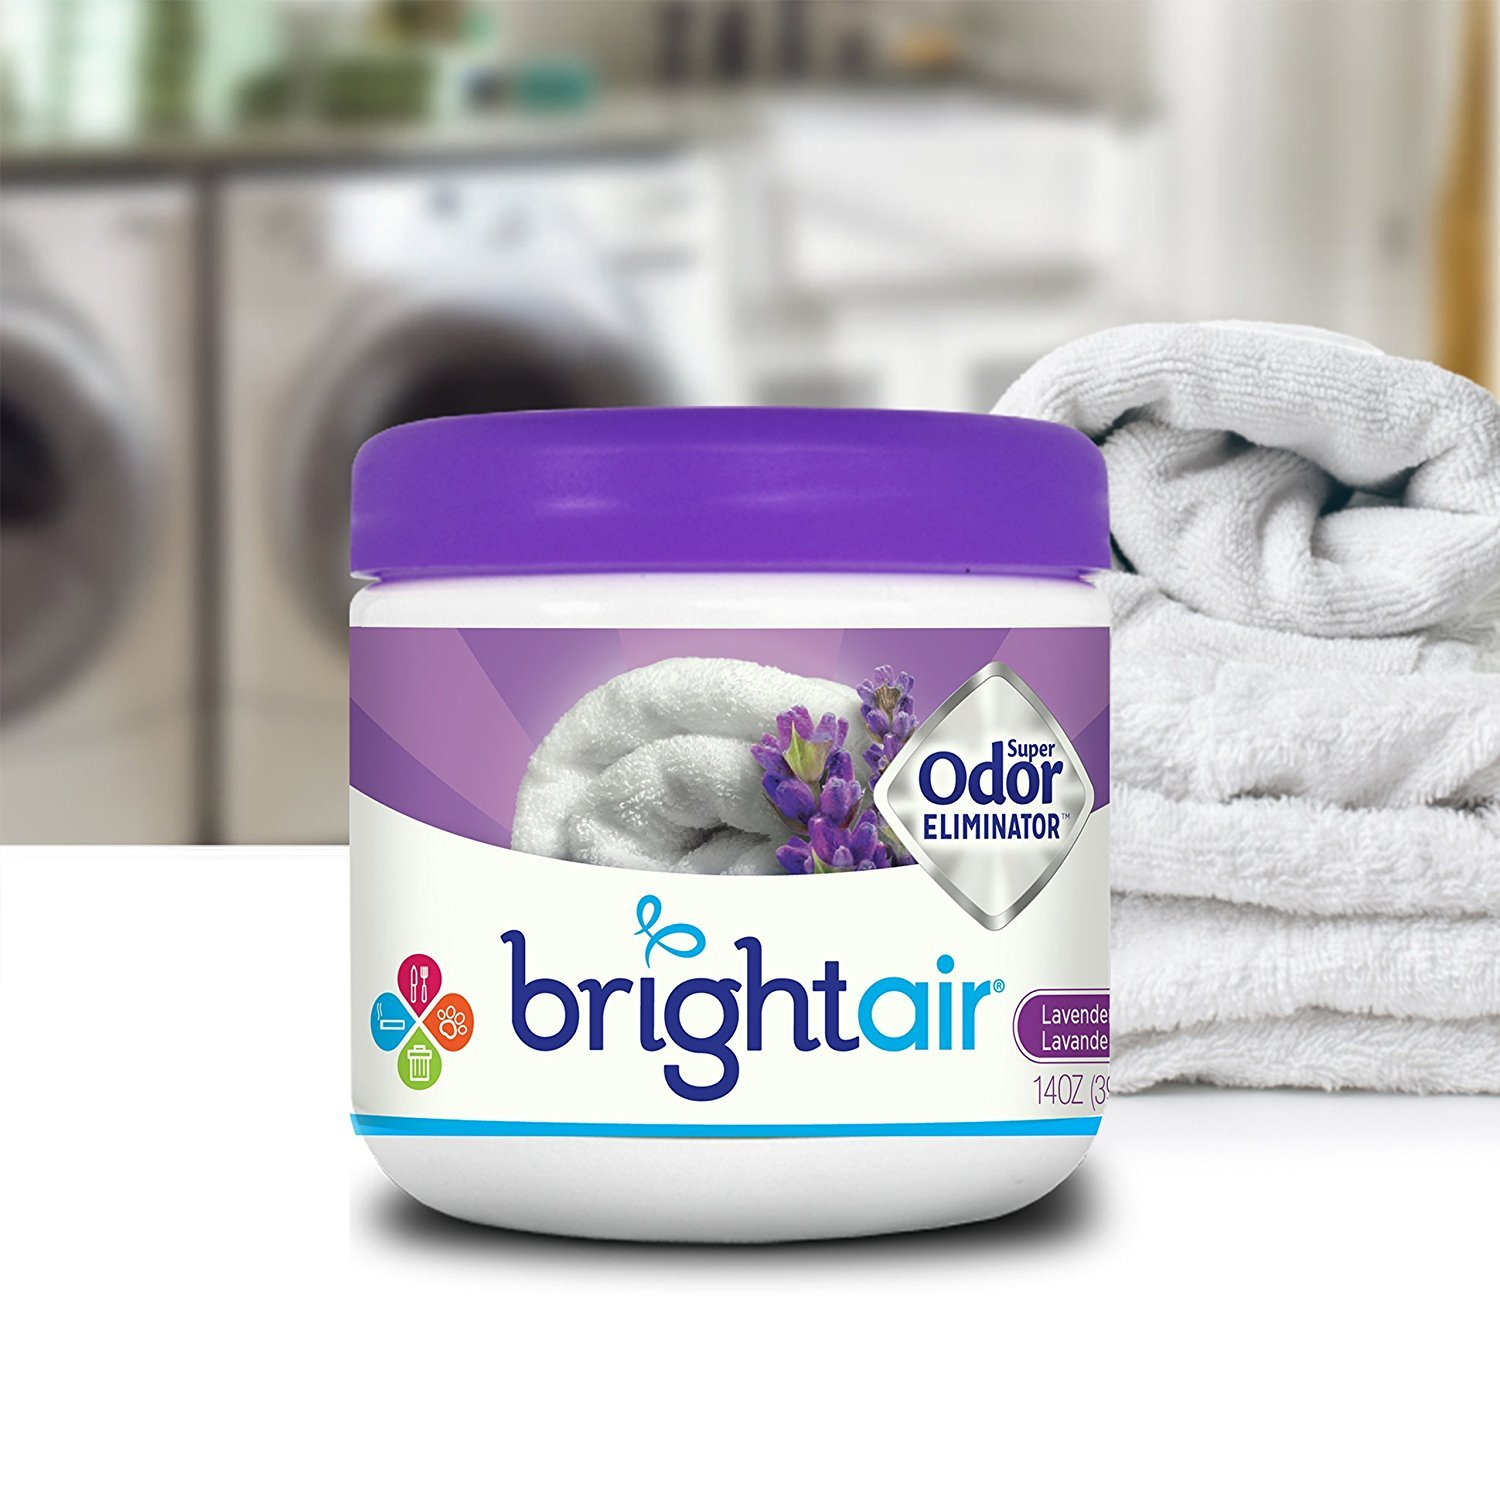 Bright Air Solid Air Freshener and Odor Eliminator, Lavender and Linen Scent, 14 Ounces, 6 Pack by Bright Air (Image #3)